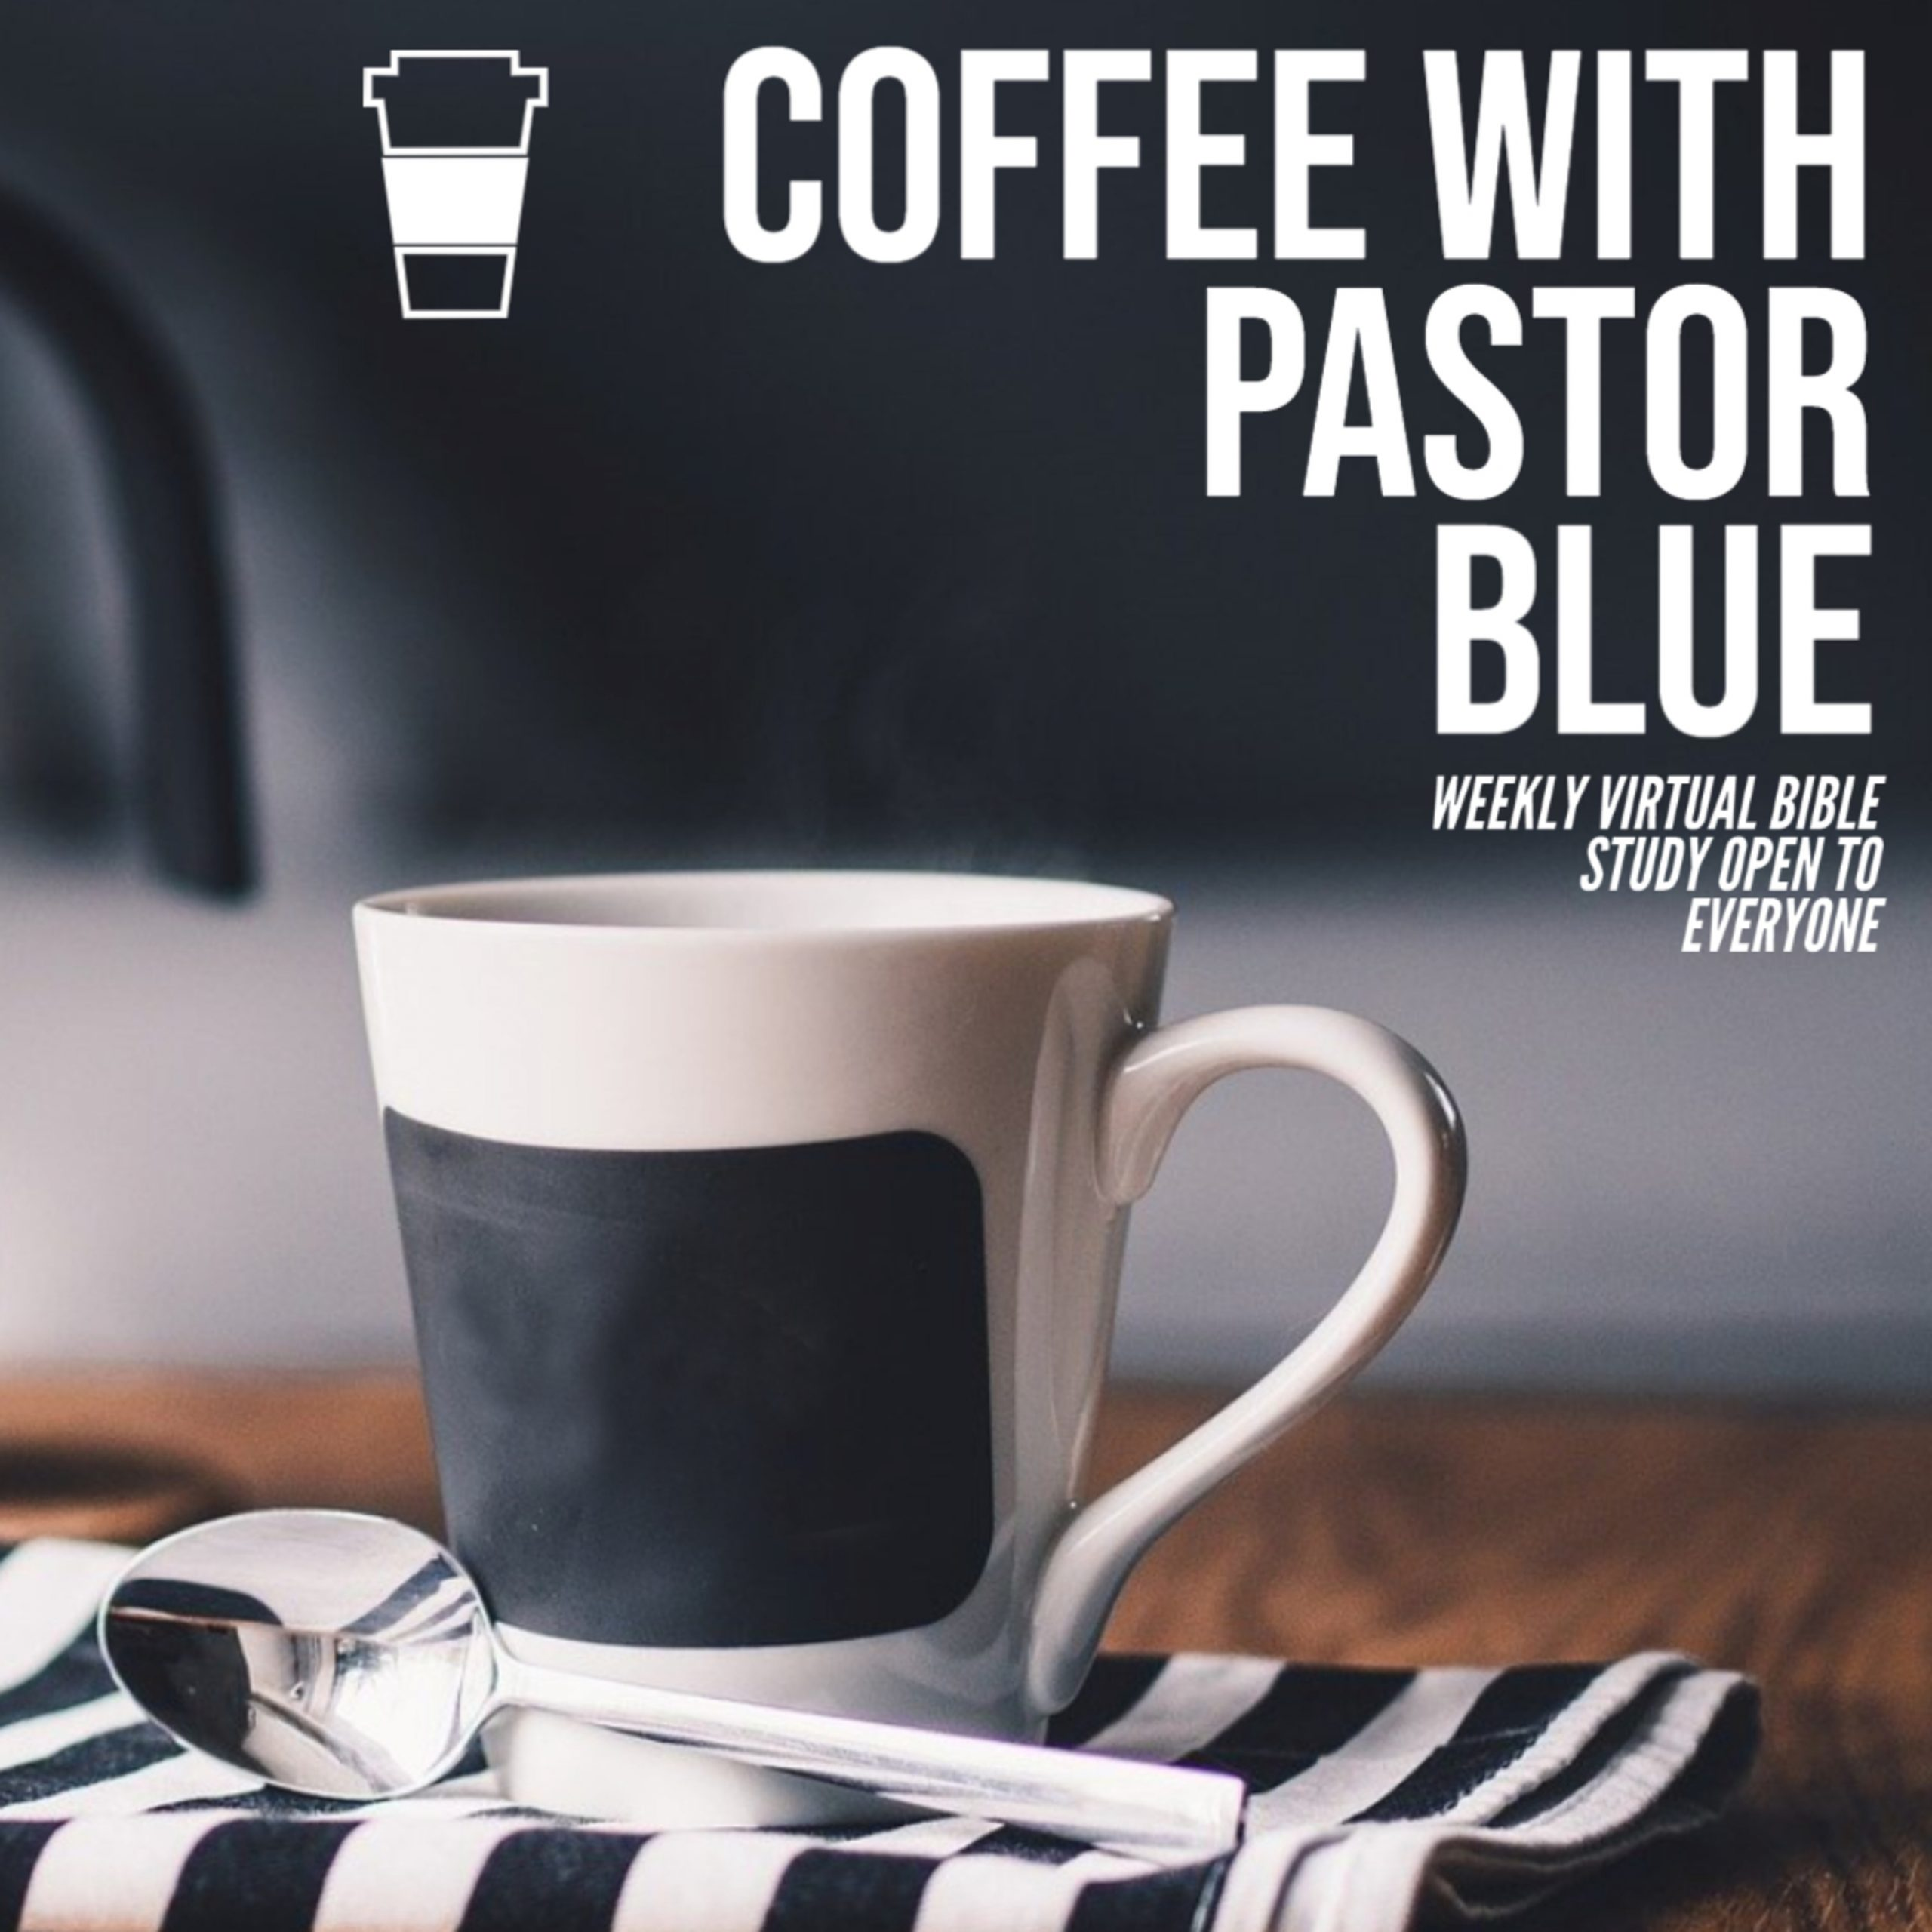 Coffee with the Pastor Episode 3: Faith, Family & Future